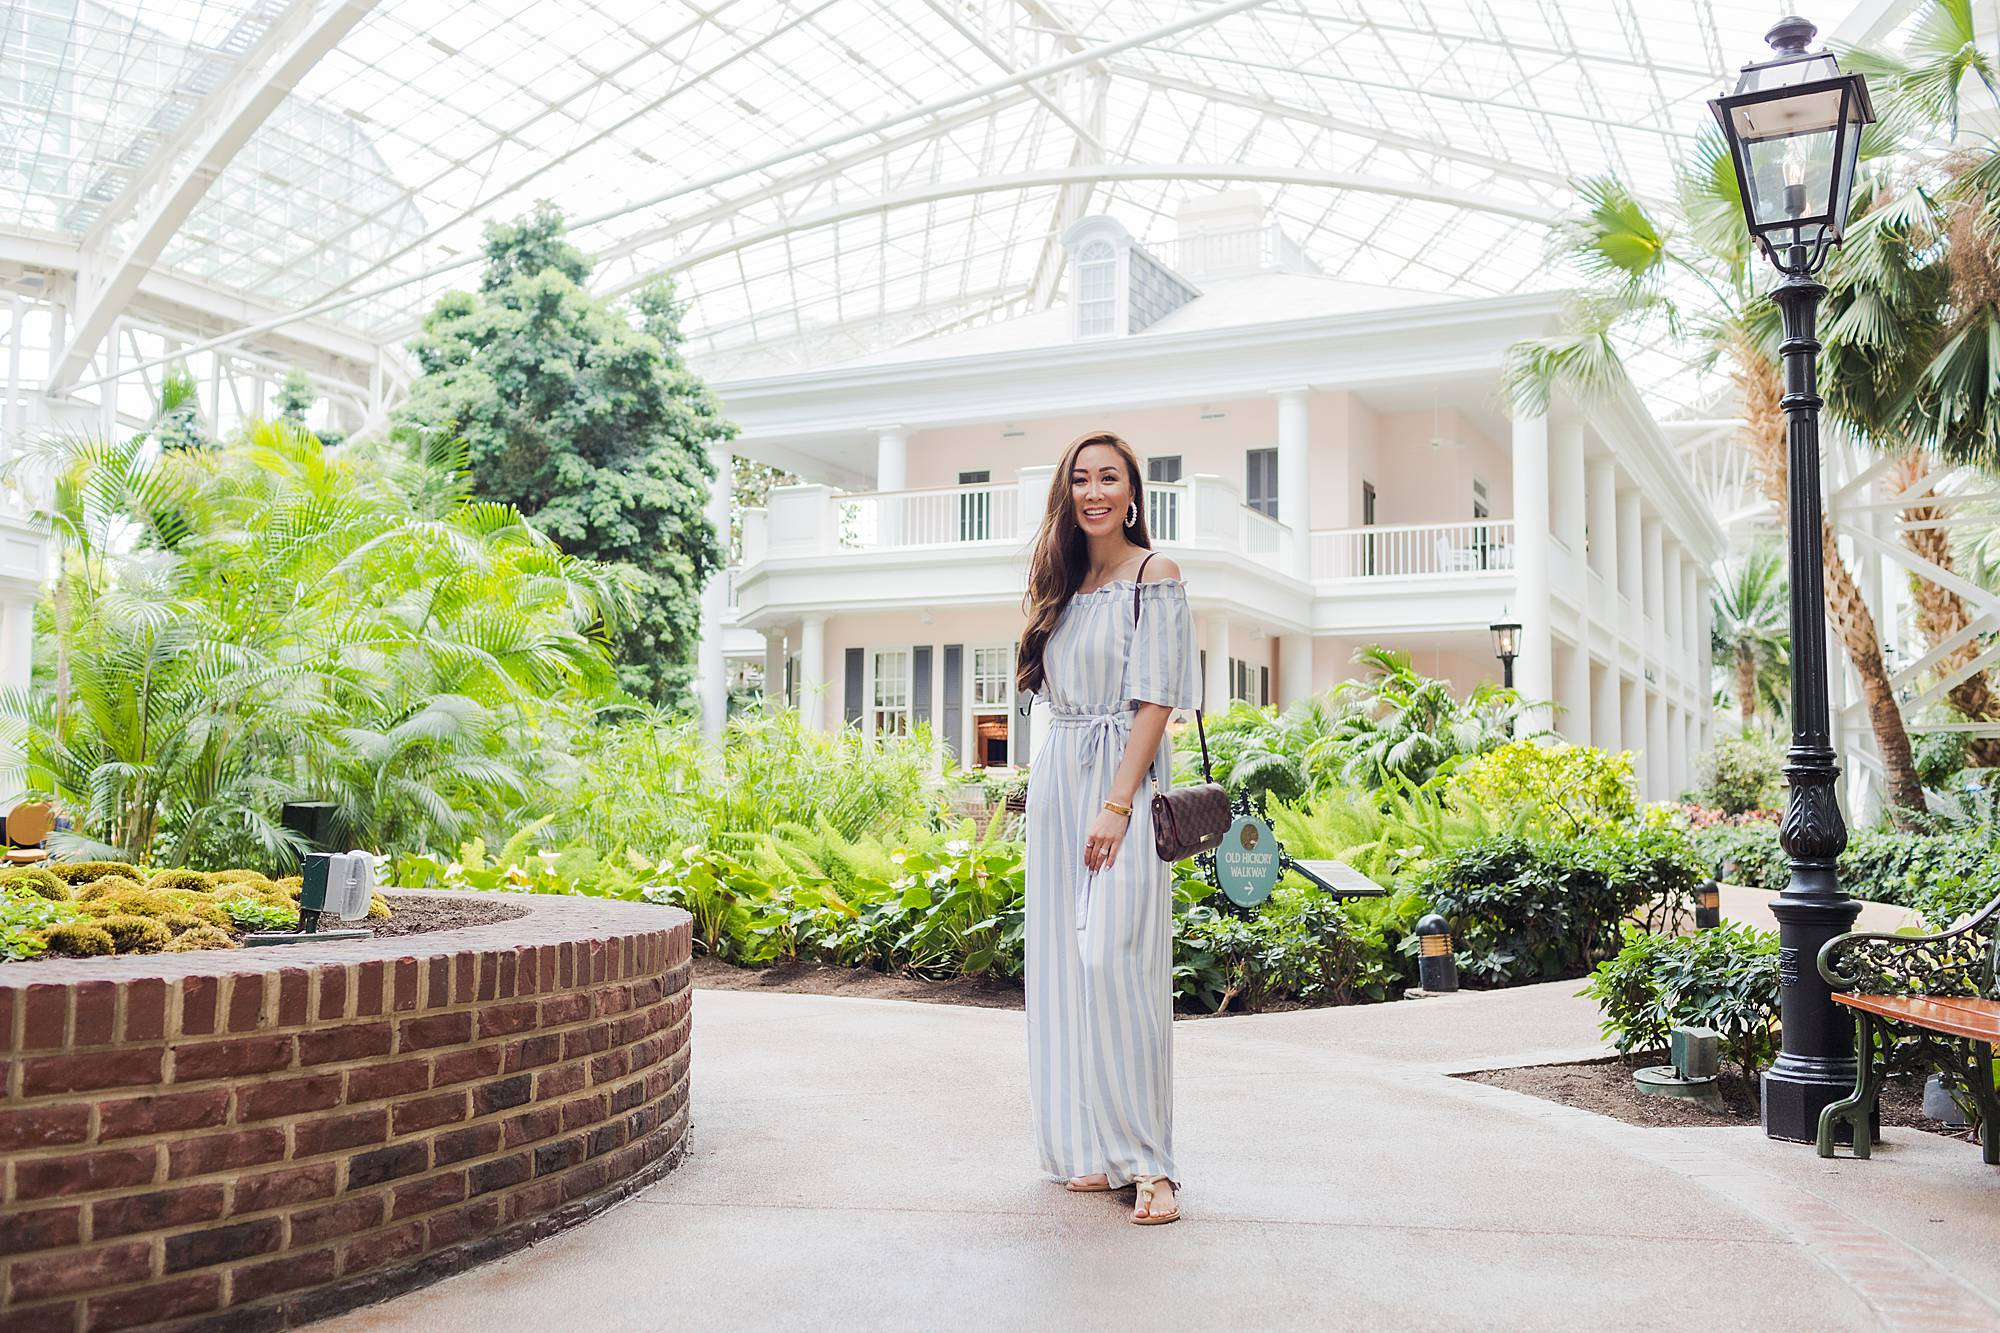 gaylord Opryland hotel in Nashville, Parisian style jumpsuit from bcbgmaxazria Macys Summer off shoulder jumpsuit